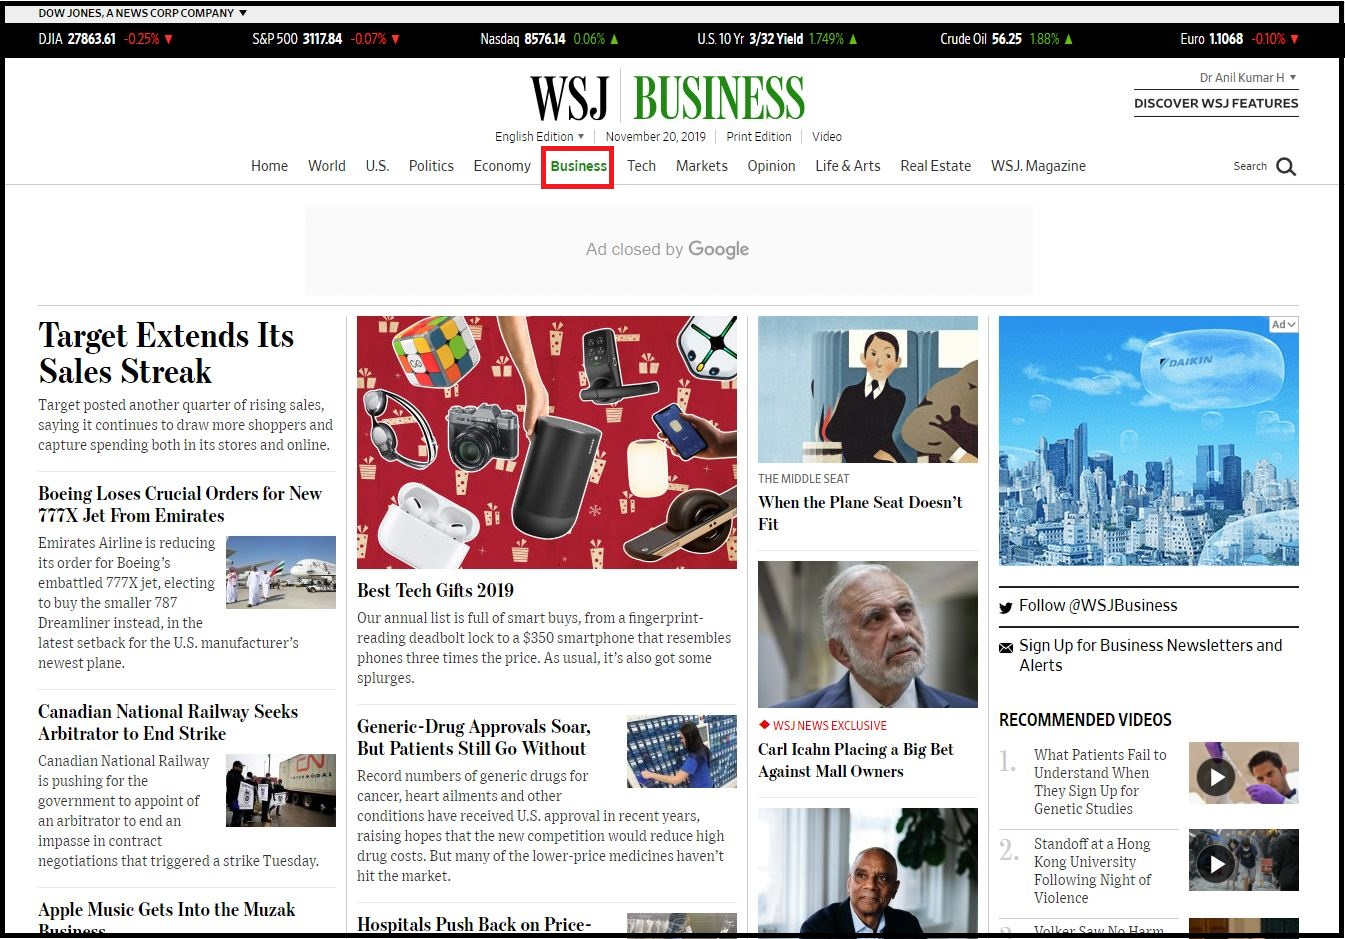 Open Wall Street Journal then Login with WSJ Credentials and Click on Business